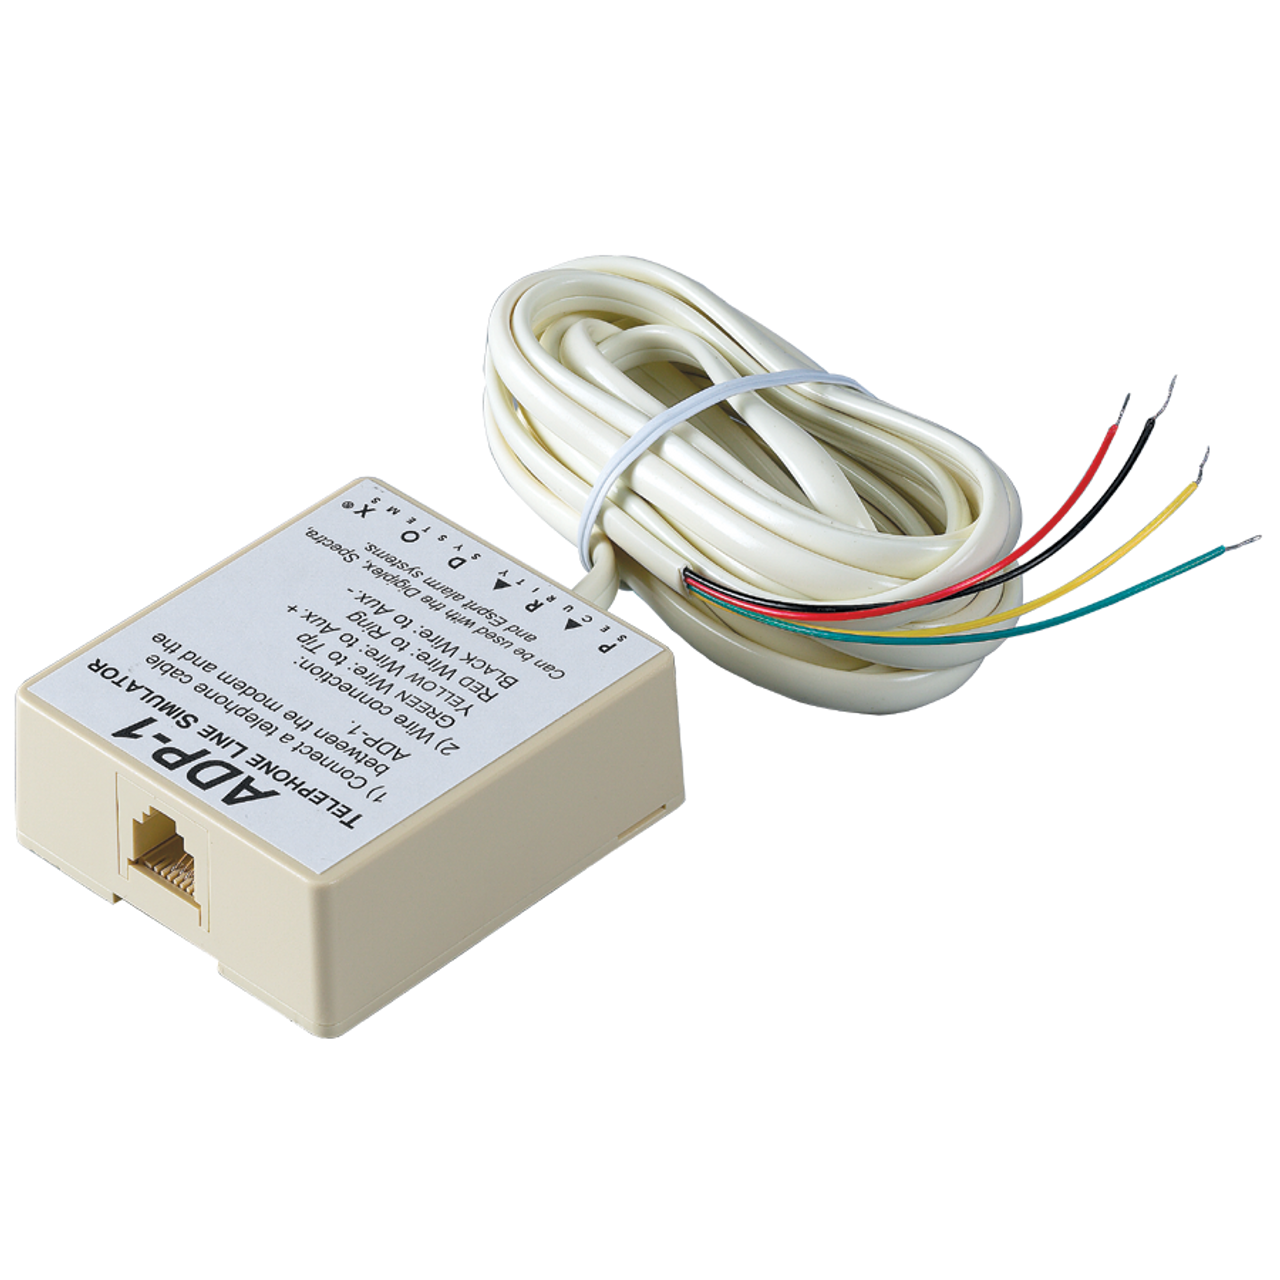 Paradox ADP1 Telephone Line Adapter - TremTech Electrical Systems Inc